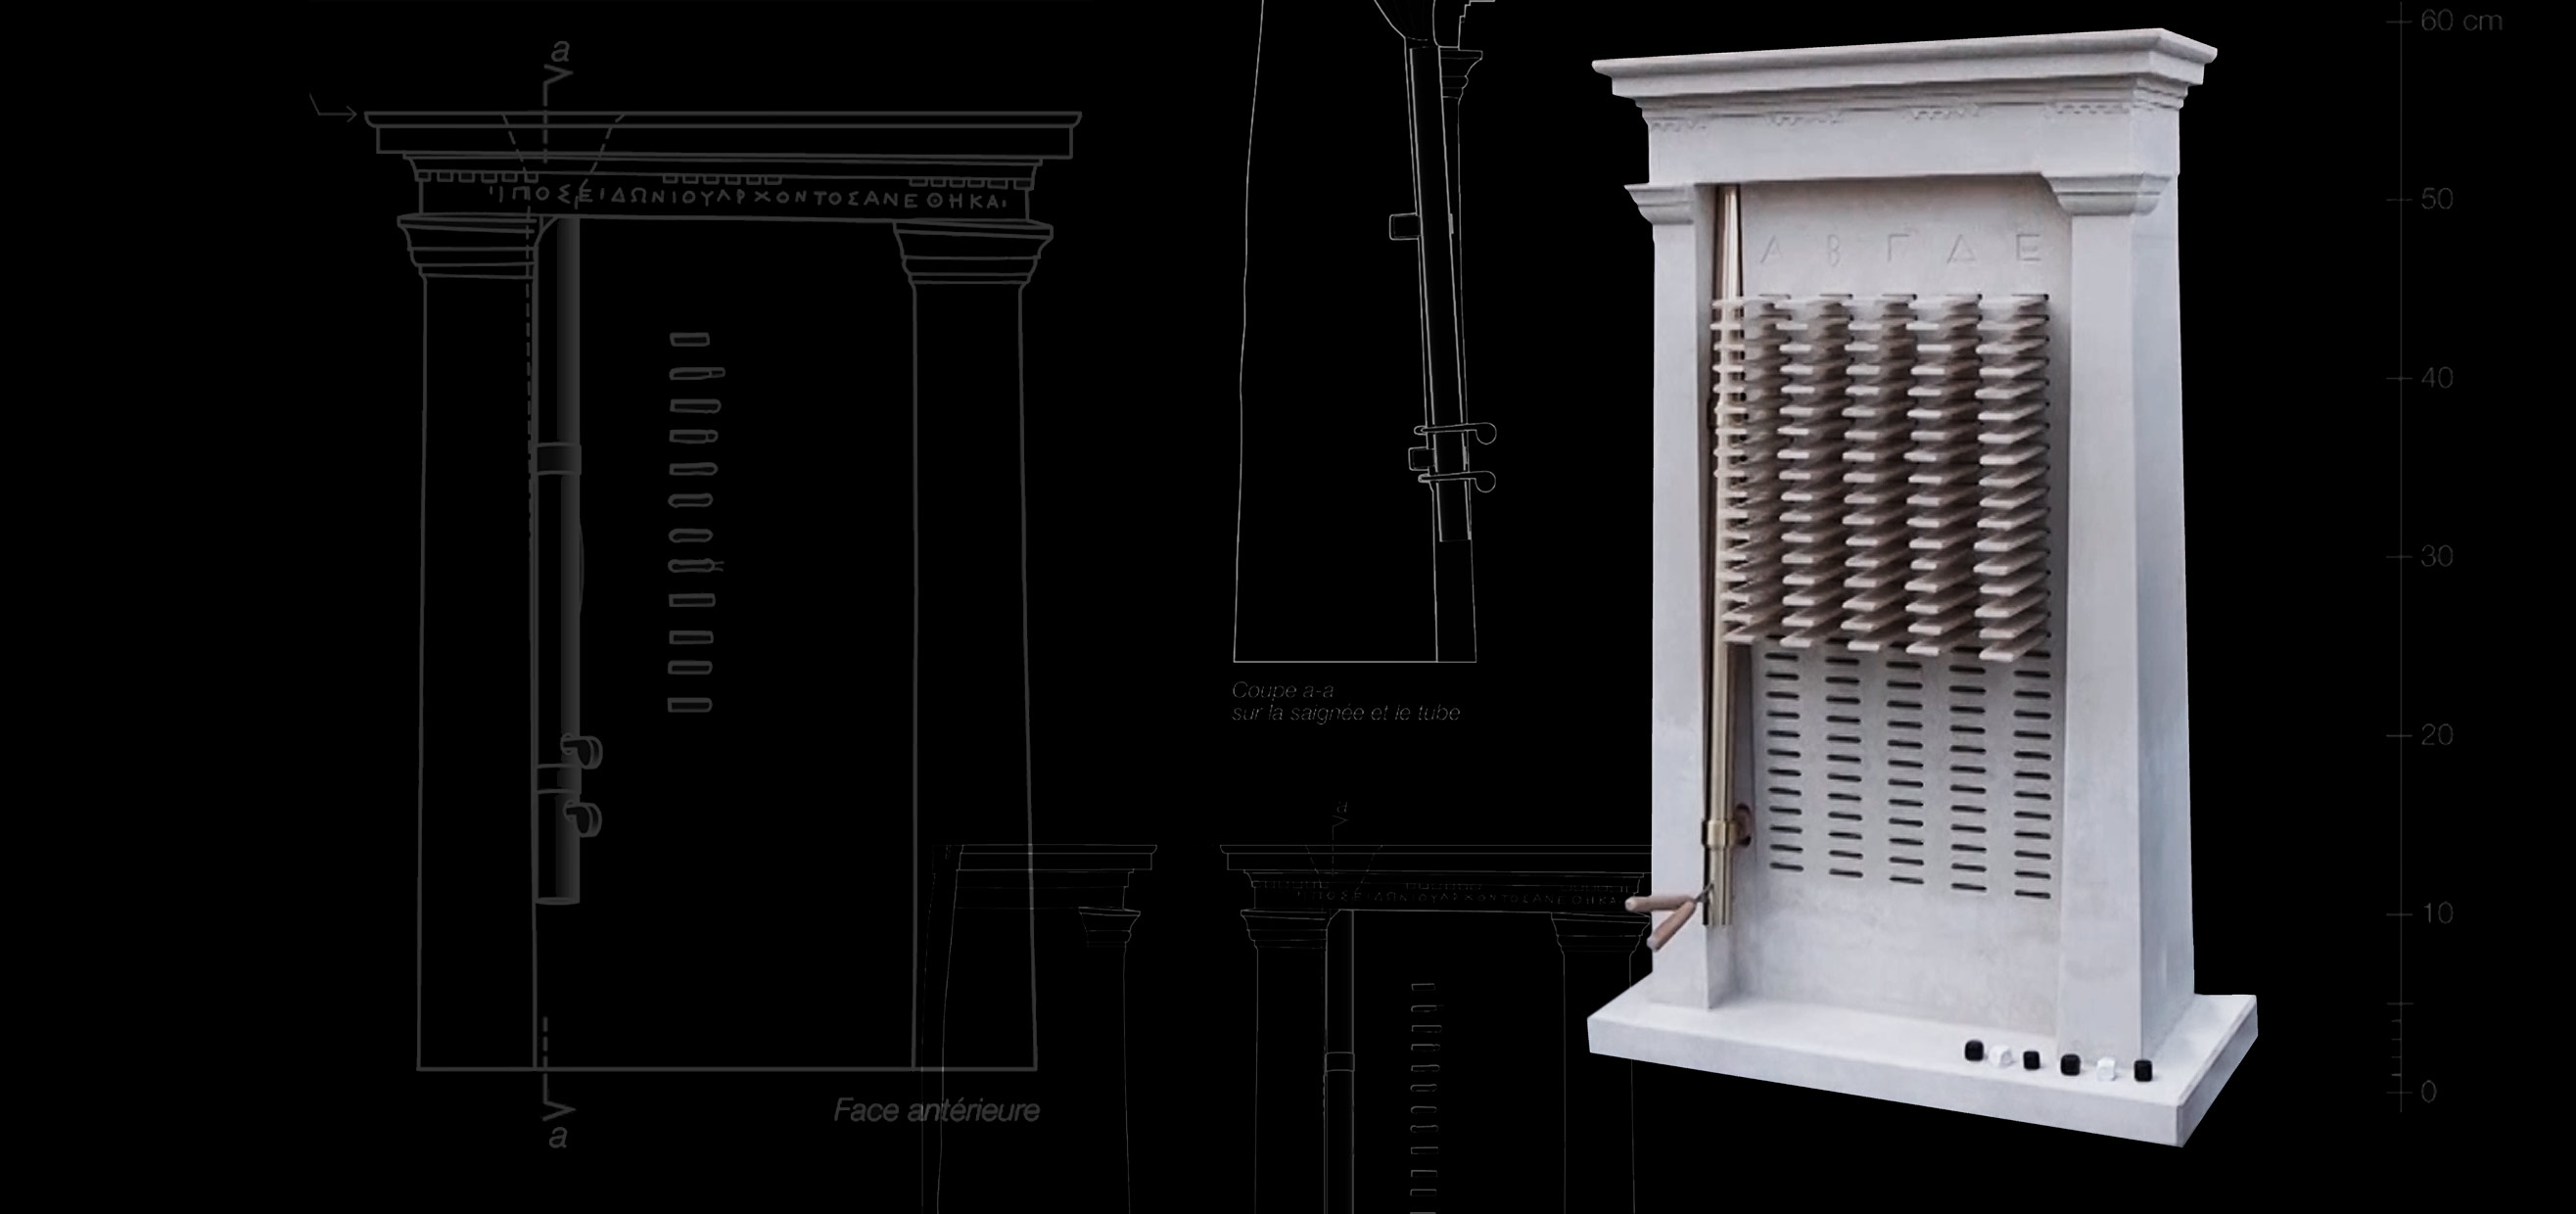 A Kleroterion, device used in the Athenian democracy to select citizens.